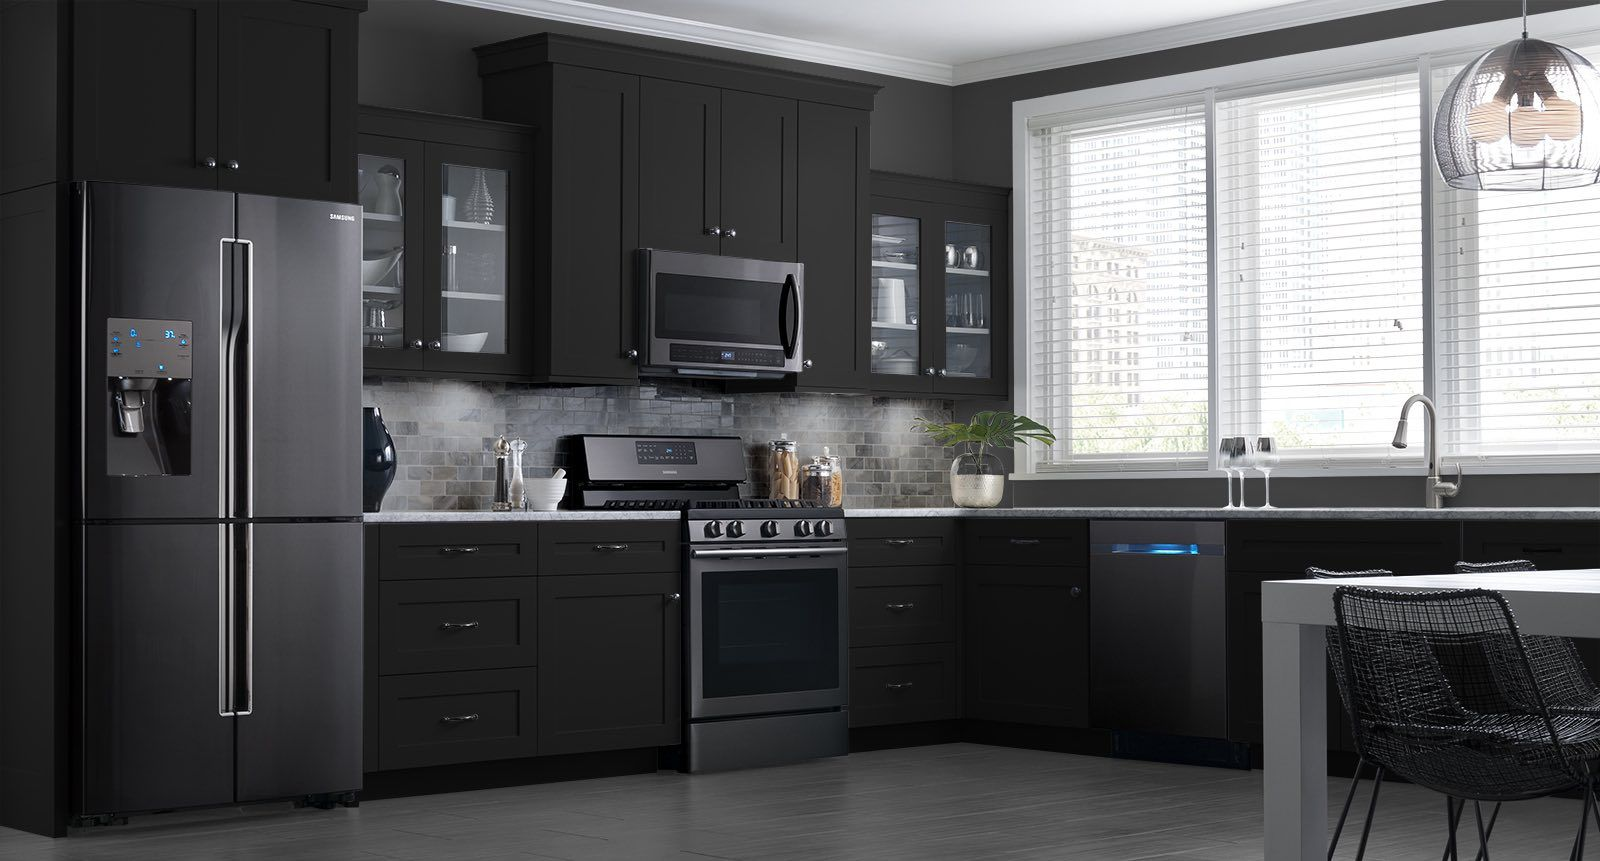 These Samsung Black Stainless Steel Appliances Look